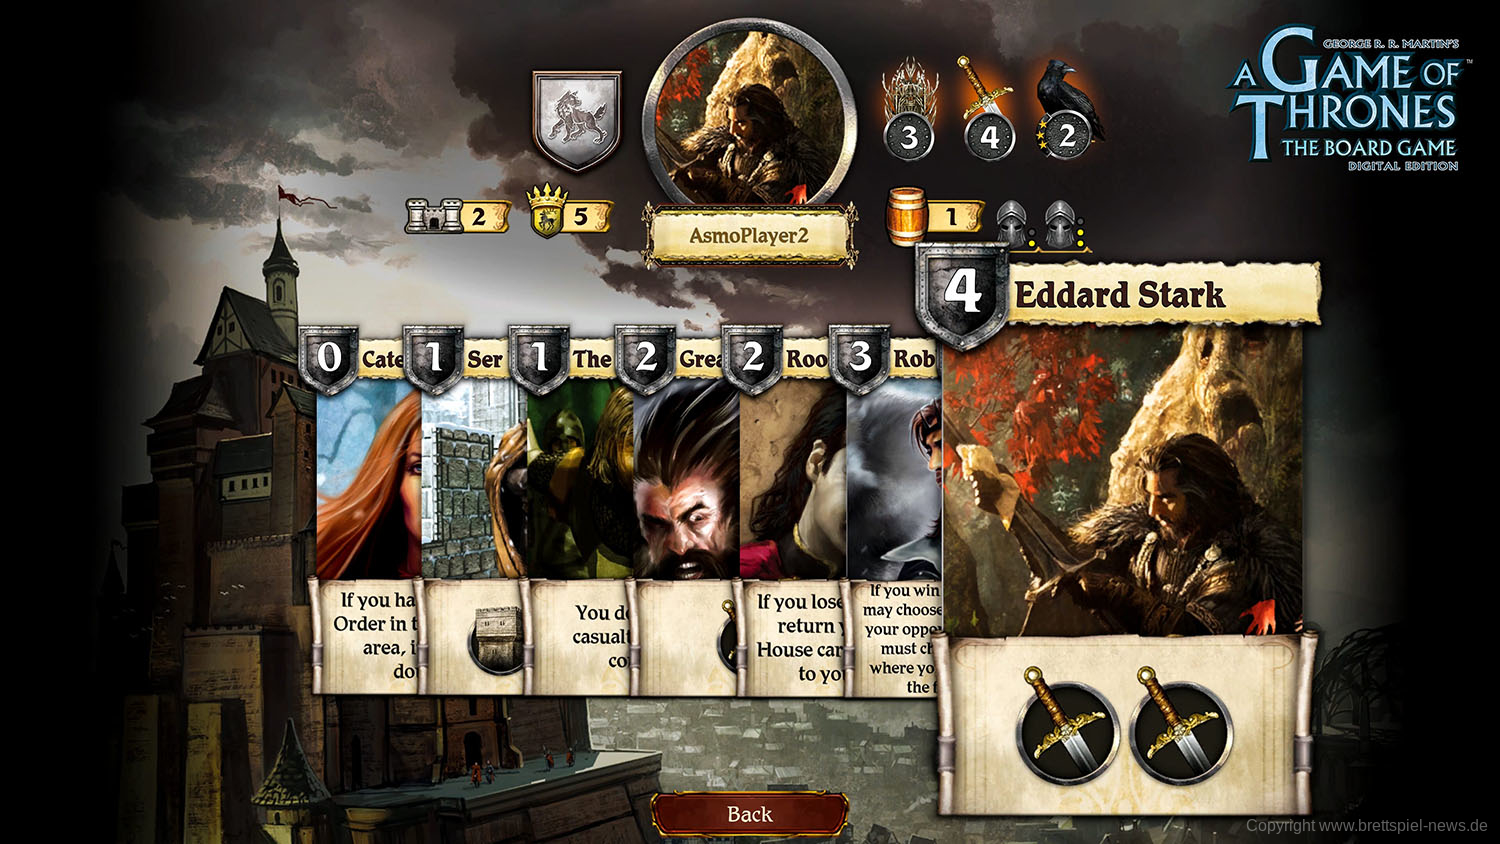 A Game of Thrones The Board Game Digital Edition Screenshot 6